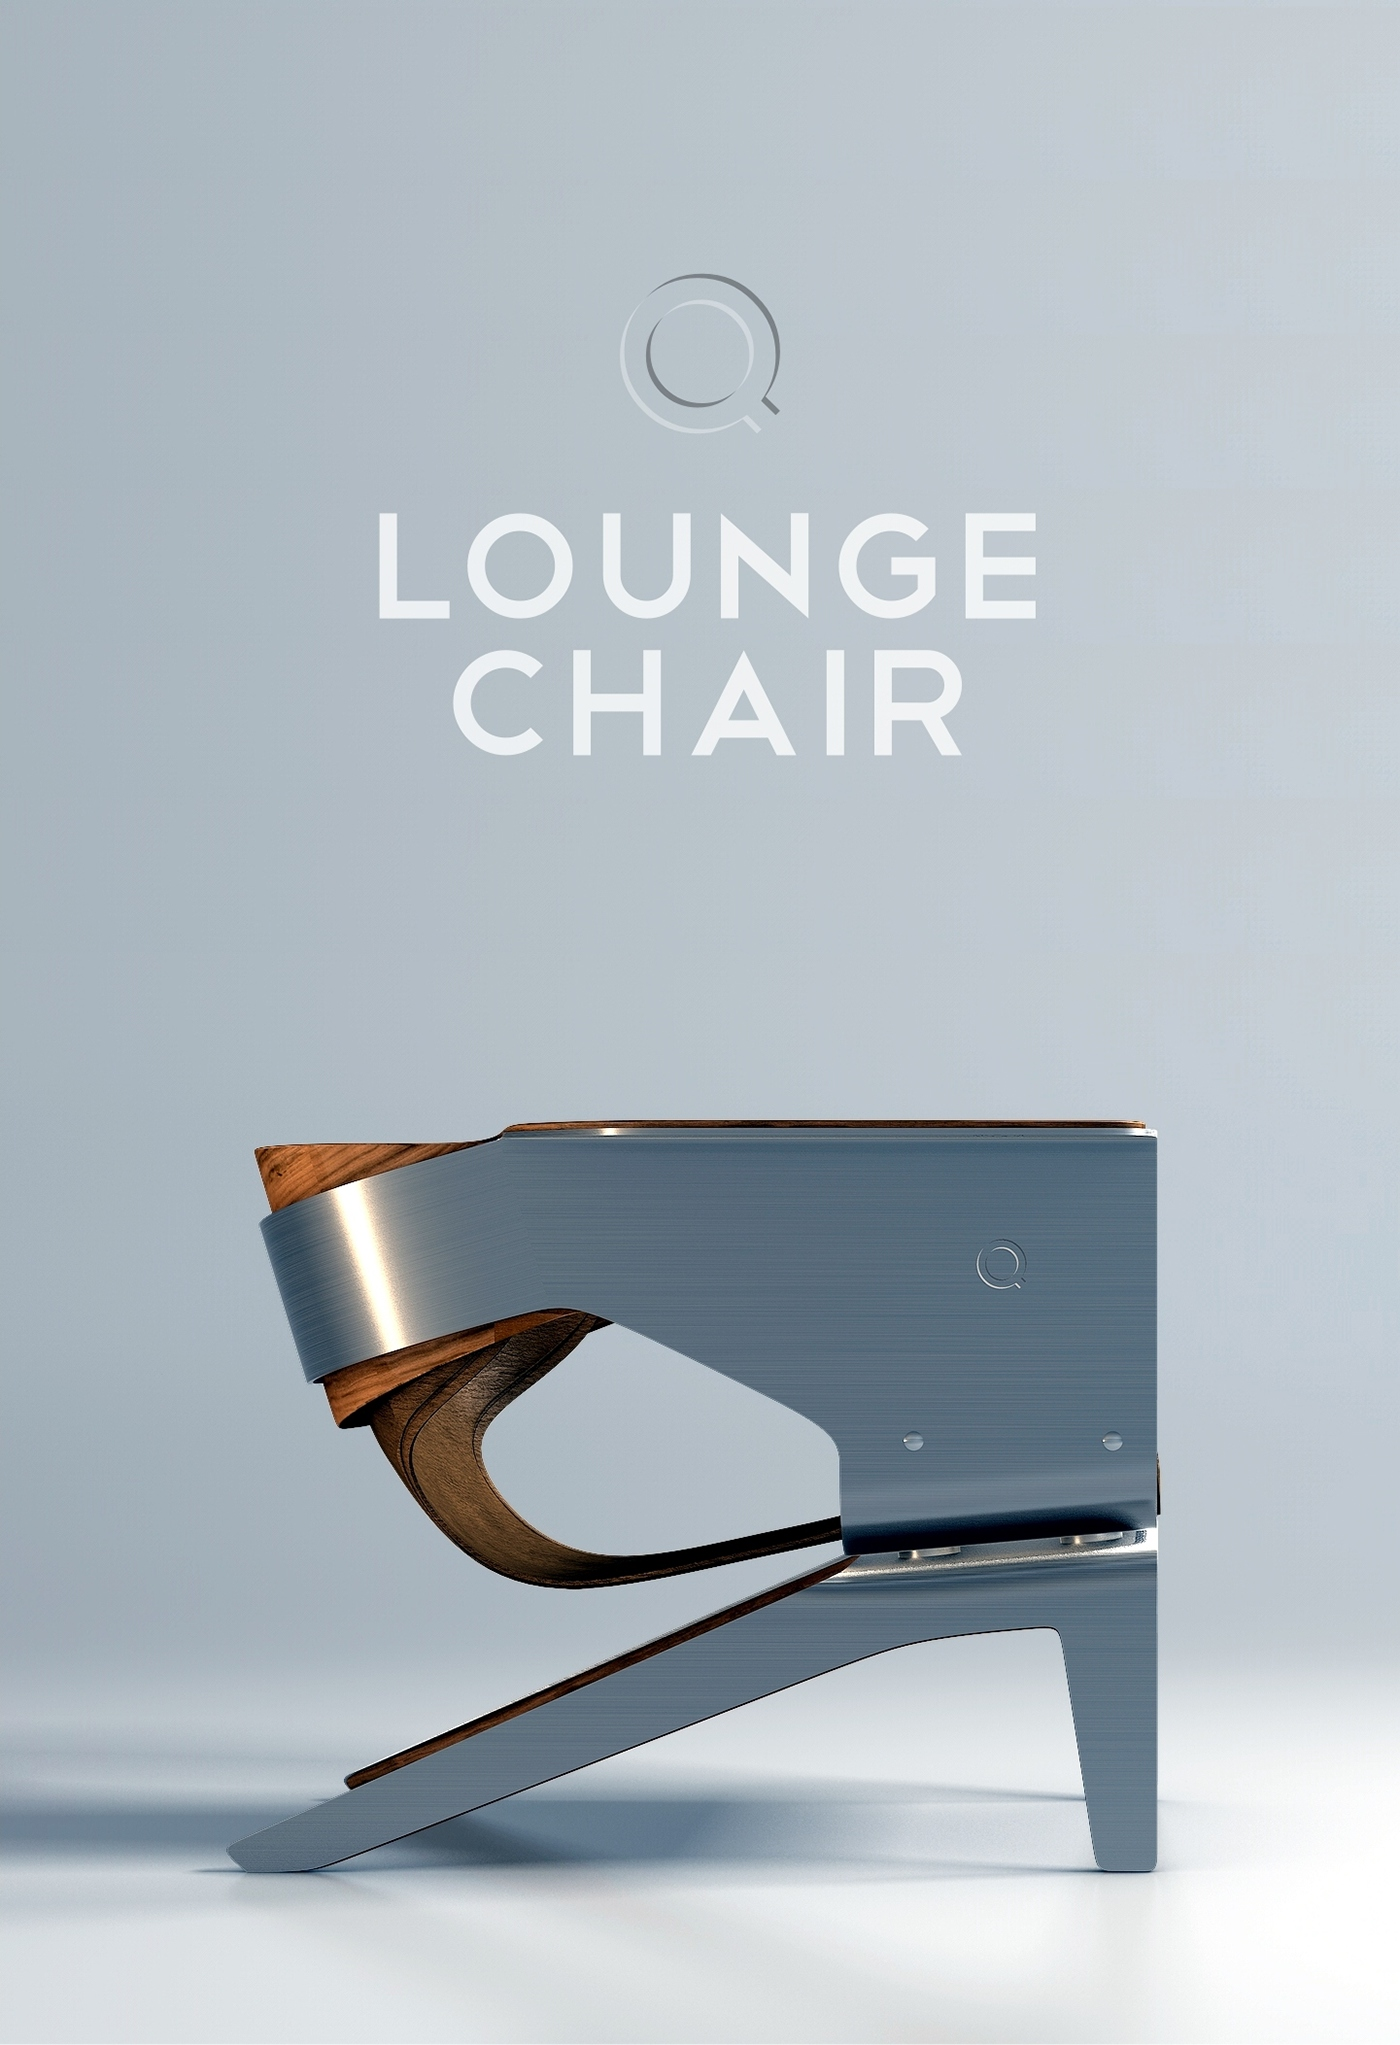 steel chair diy rocking slipcovers for nursery q lounge on behance